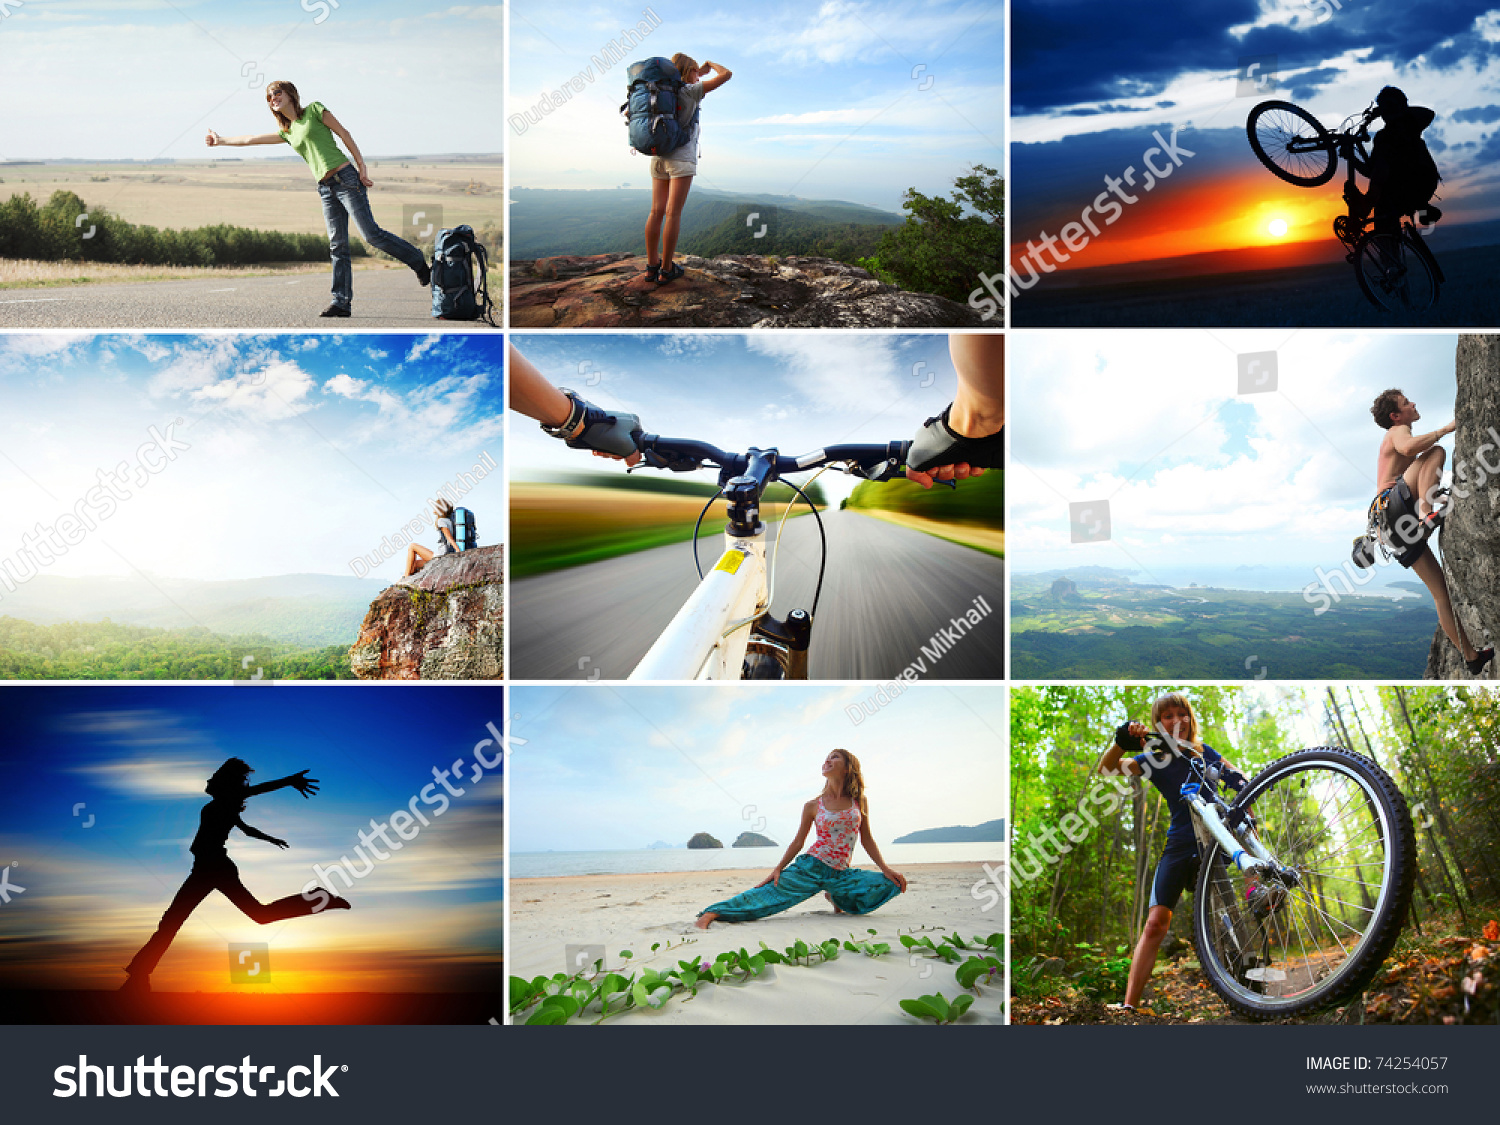 collage sport travel theme hiking cycling stock photo 74254057